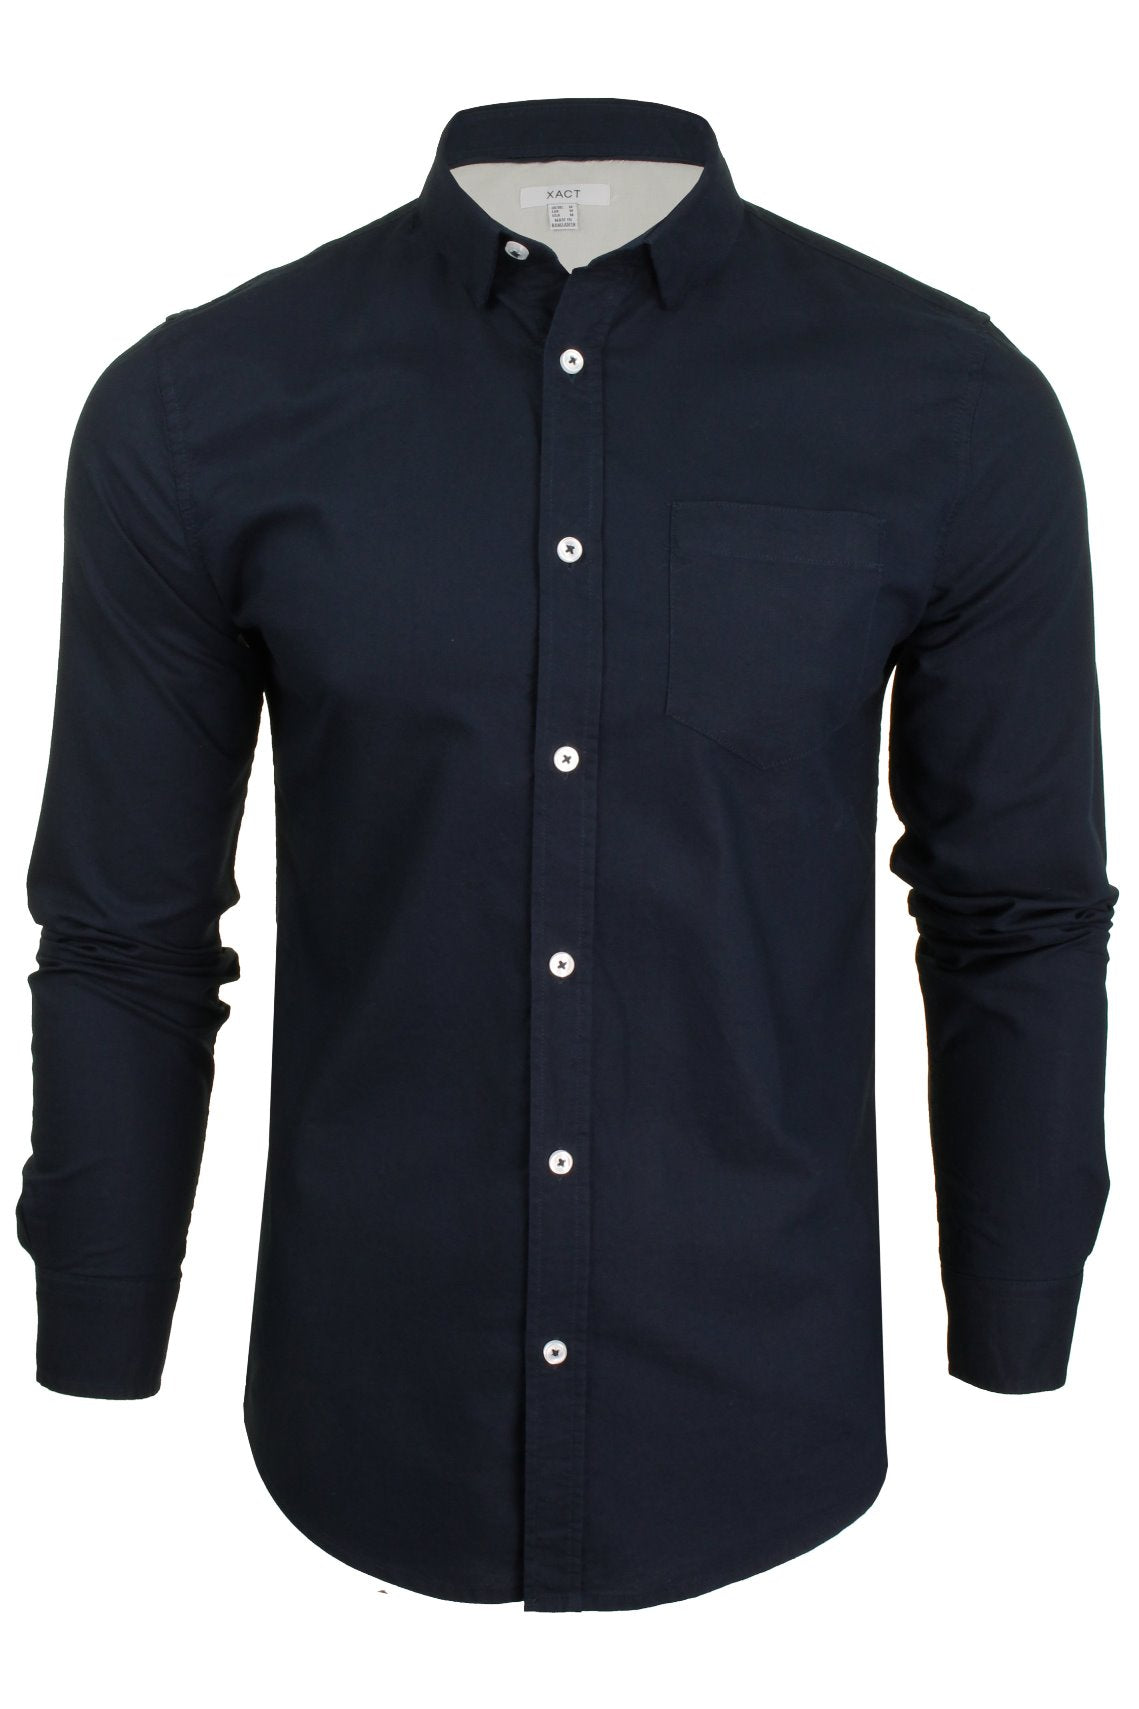 Xact  Long Sleeved Oxford Shirt-Main Image